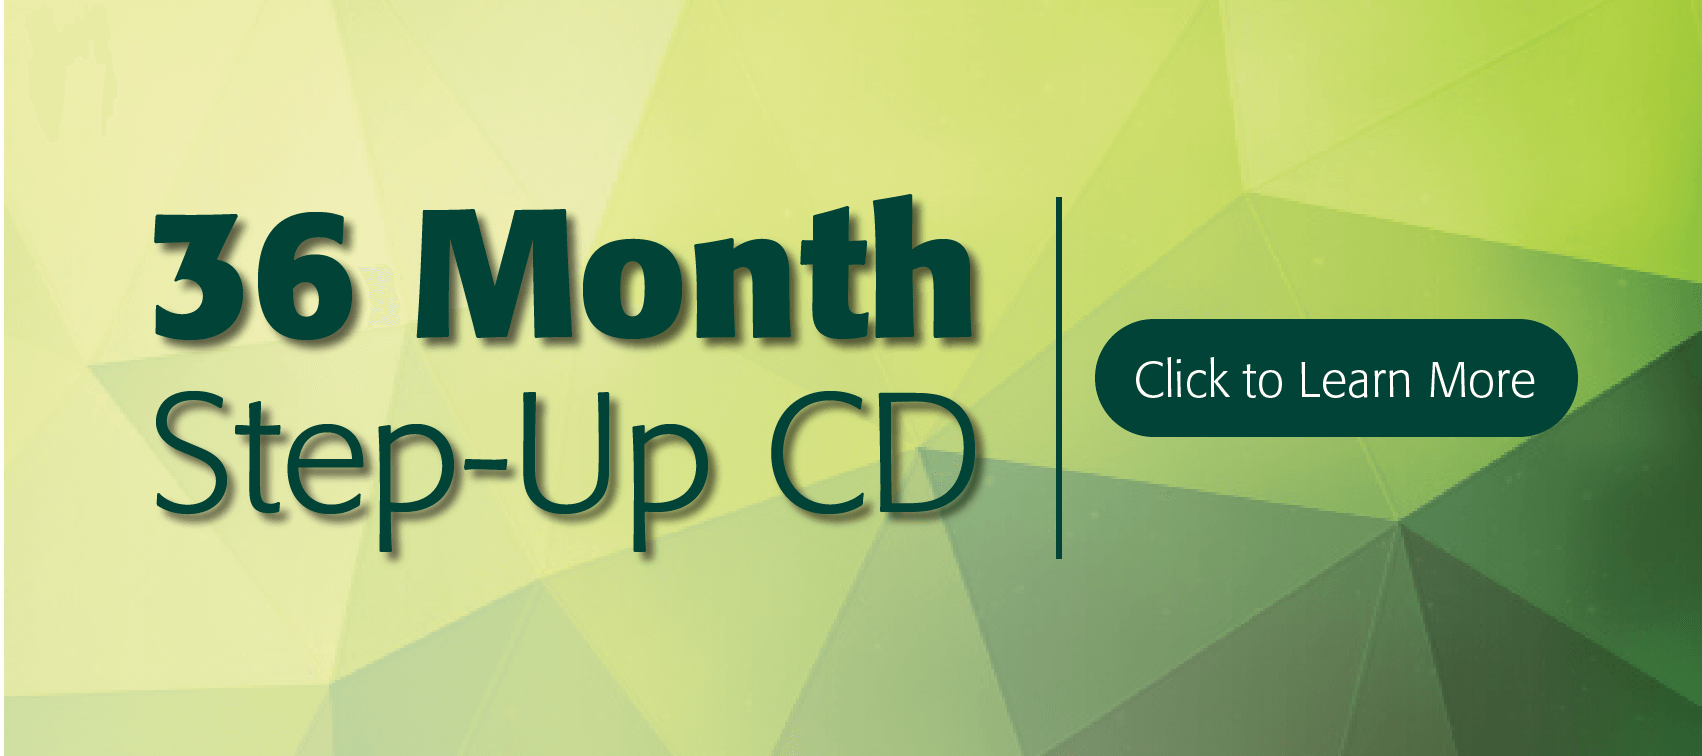 FFBT is offering a 36 Month Step Up CD. Click here to learn more.